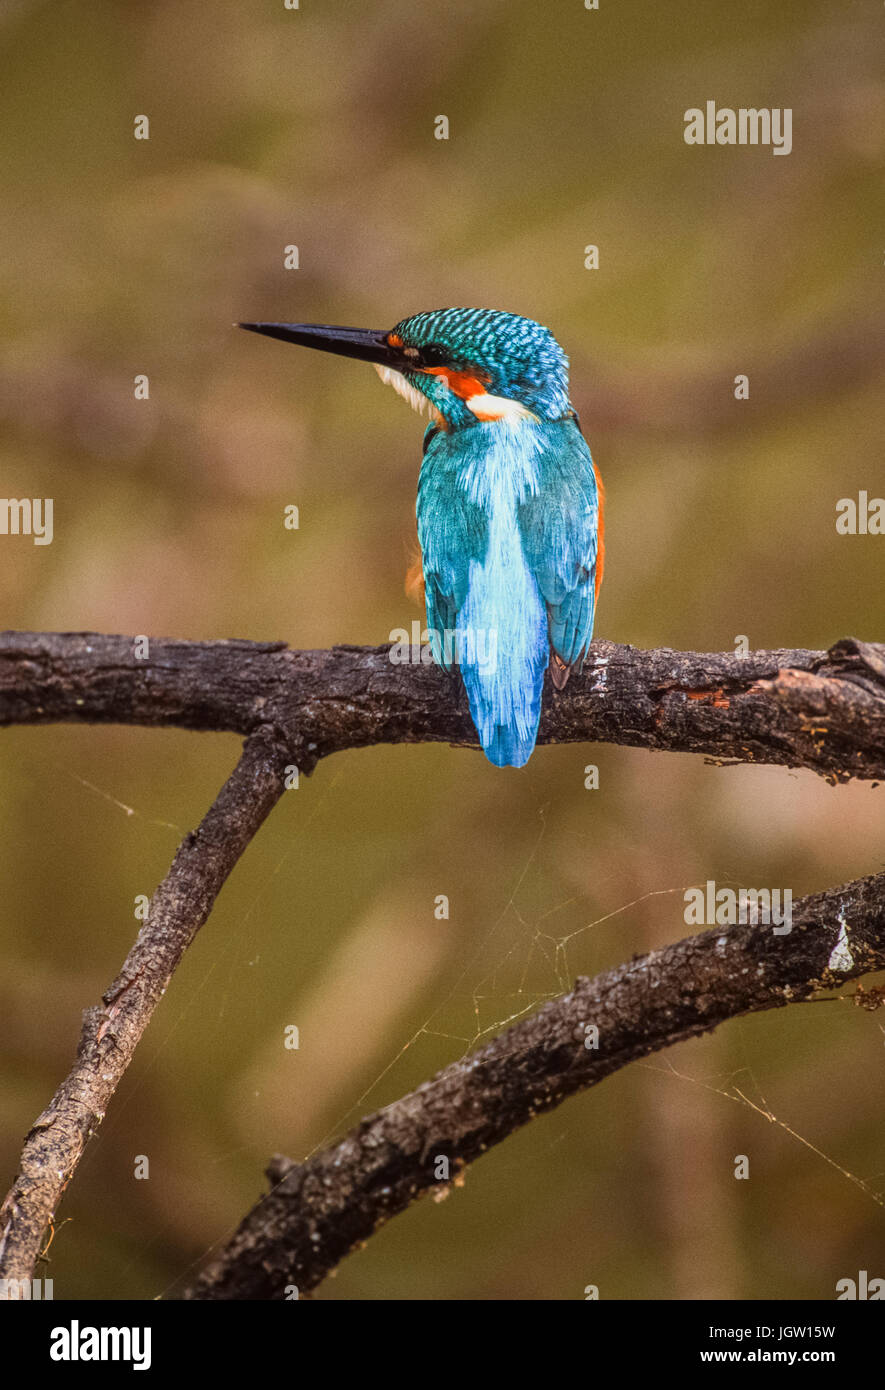 Common kingfisher (Alcedo atthis) also known as Eurasian kingfisher or River kingfisher, Keoladeo Ghana National - Stock Image